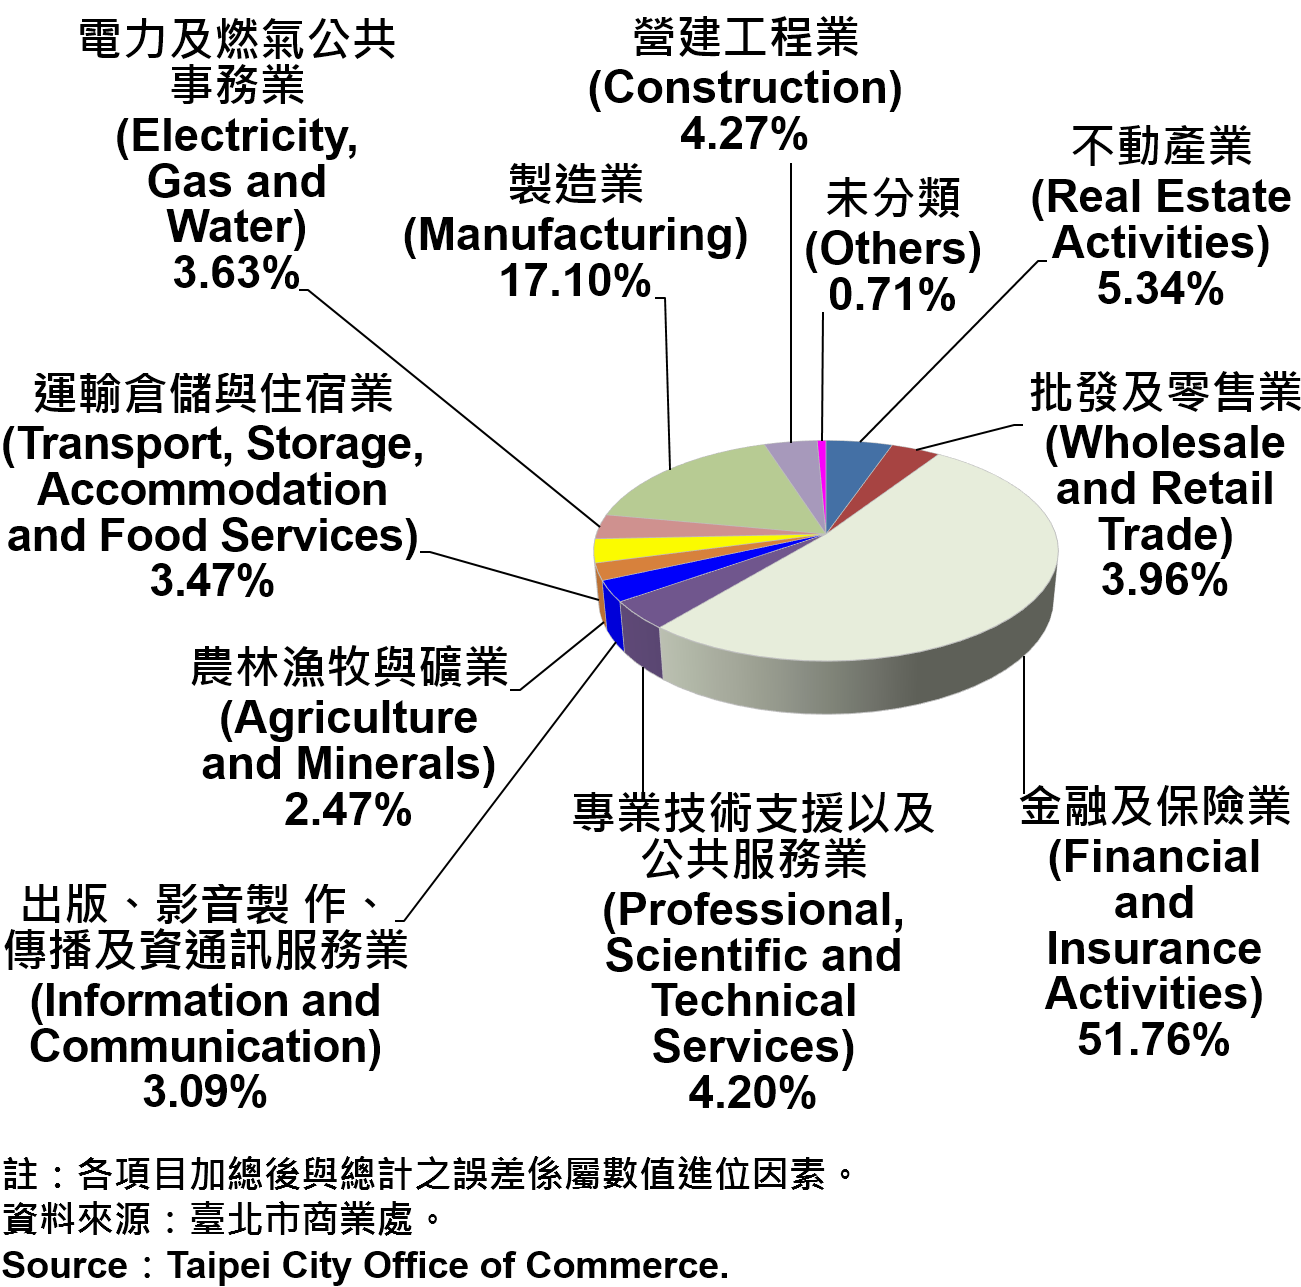 臺北市公司登記資本額產業別比重—2018 Ratios of Capital for the Companies and Firms Registered in Taipei City by Industry—2018